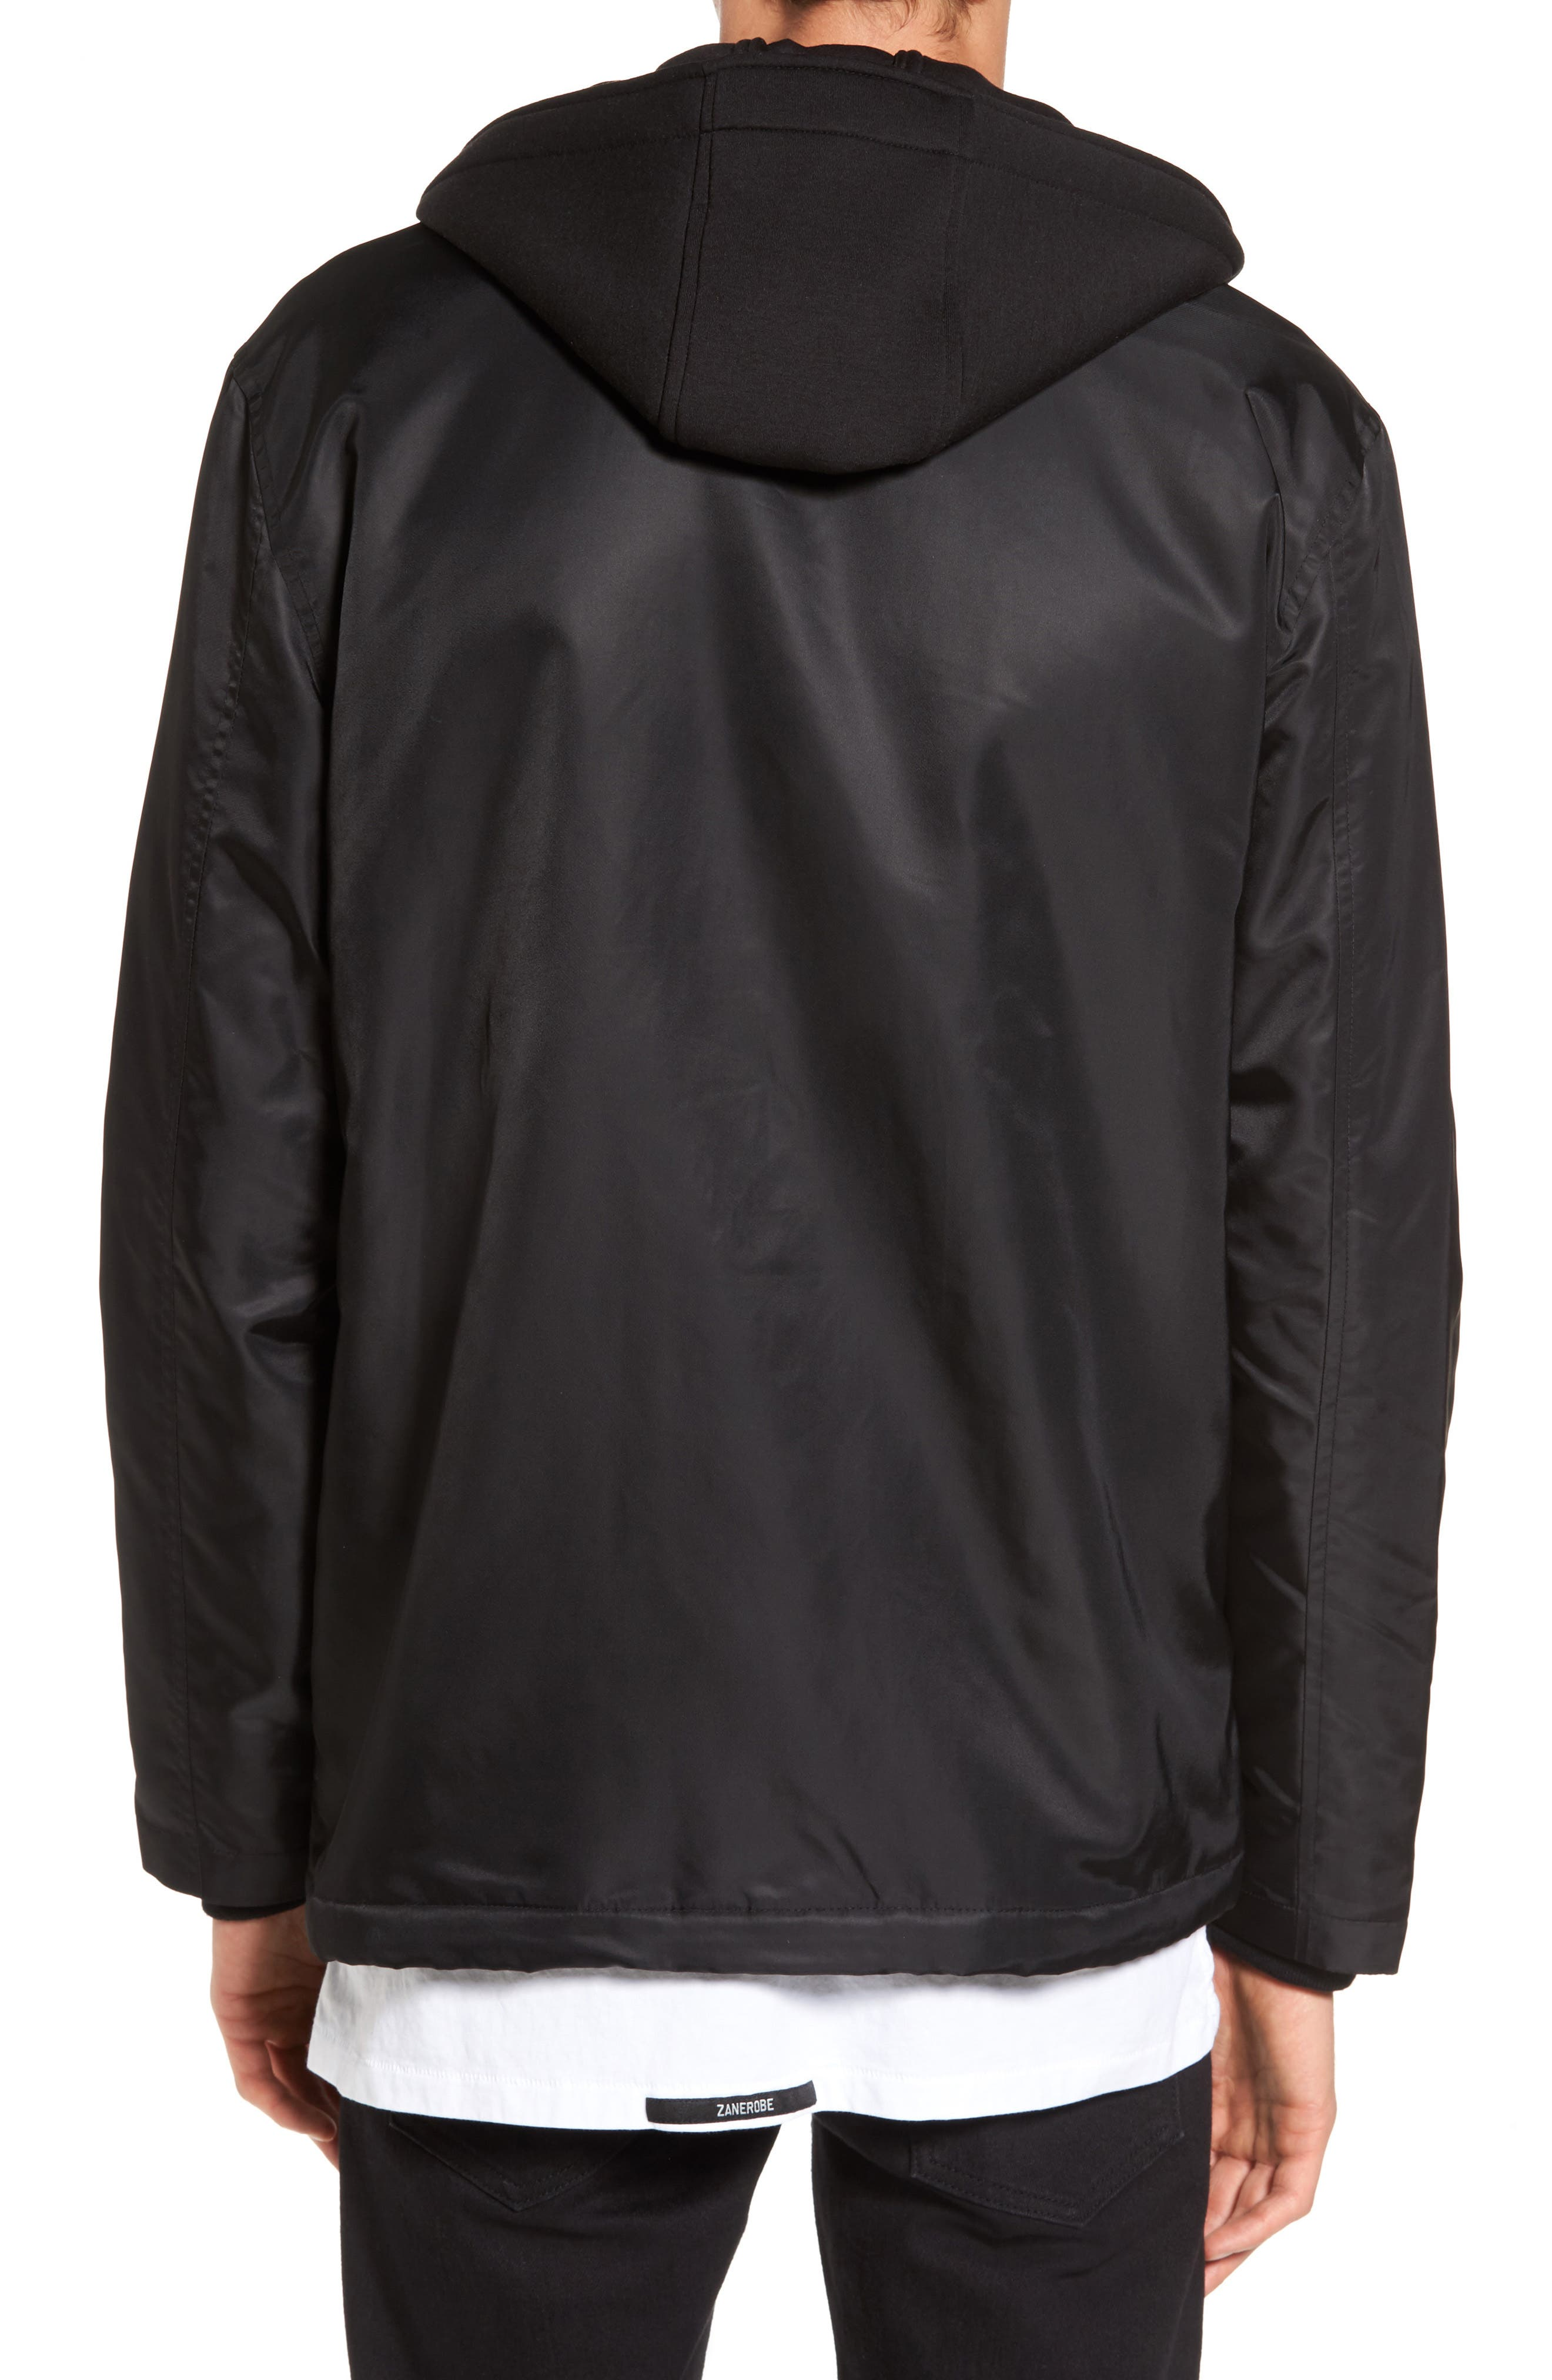 THE VERY WARM, Yorkshire Hooded Coach's Jacket, Alternate thumbnail 2, color, 001